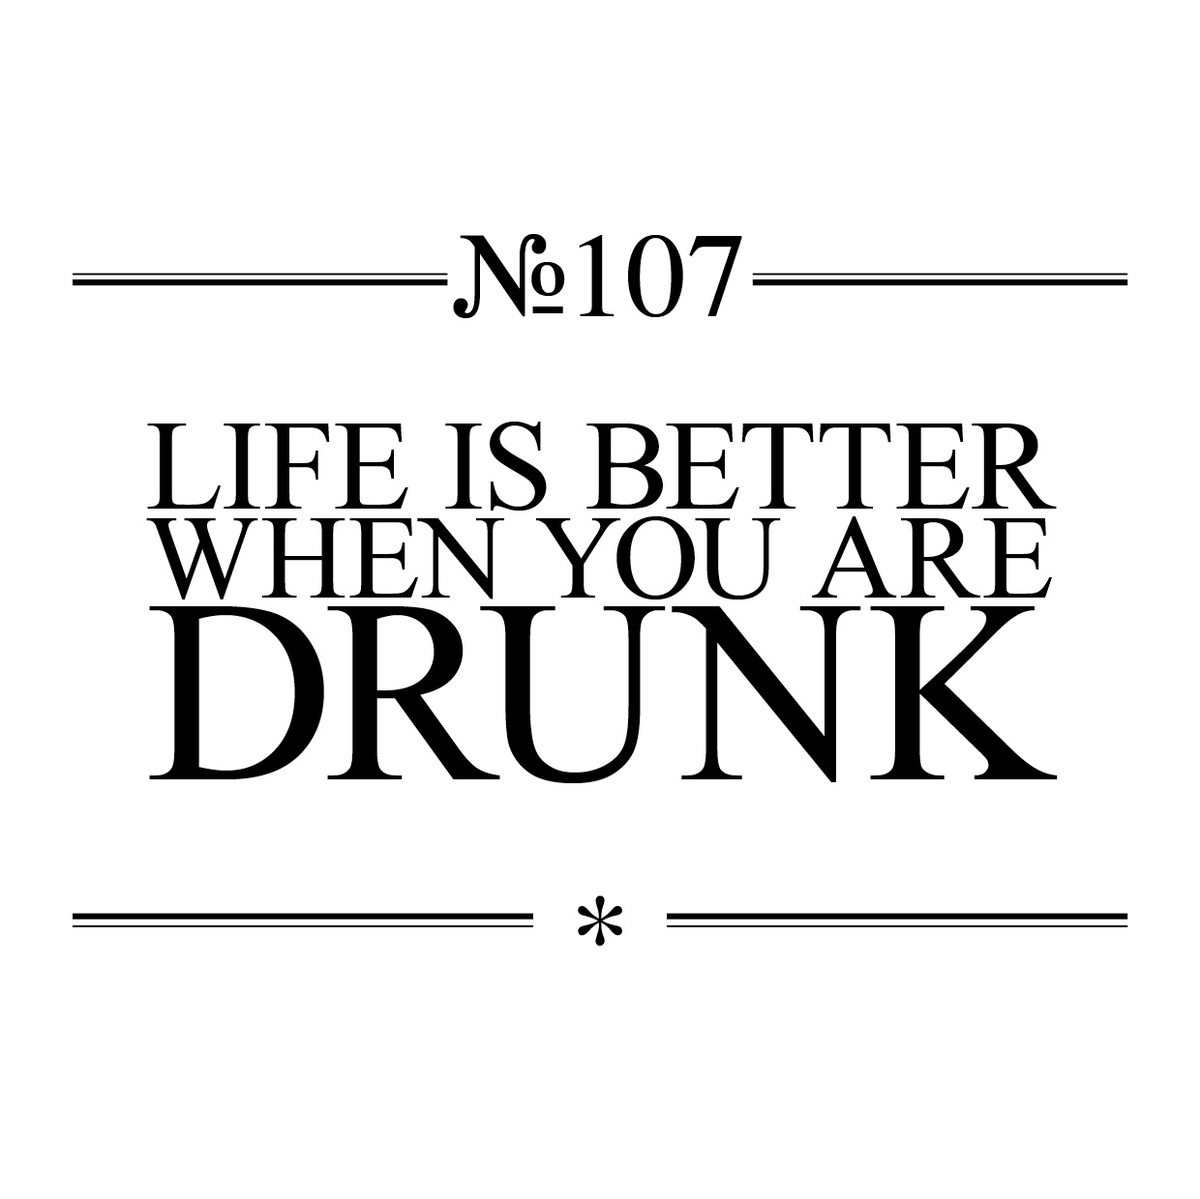 Drunks quote #1